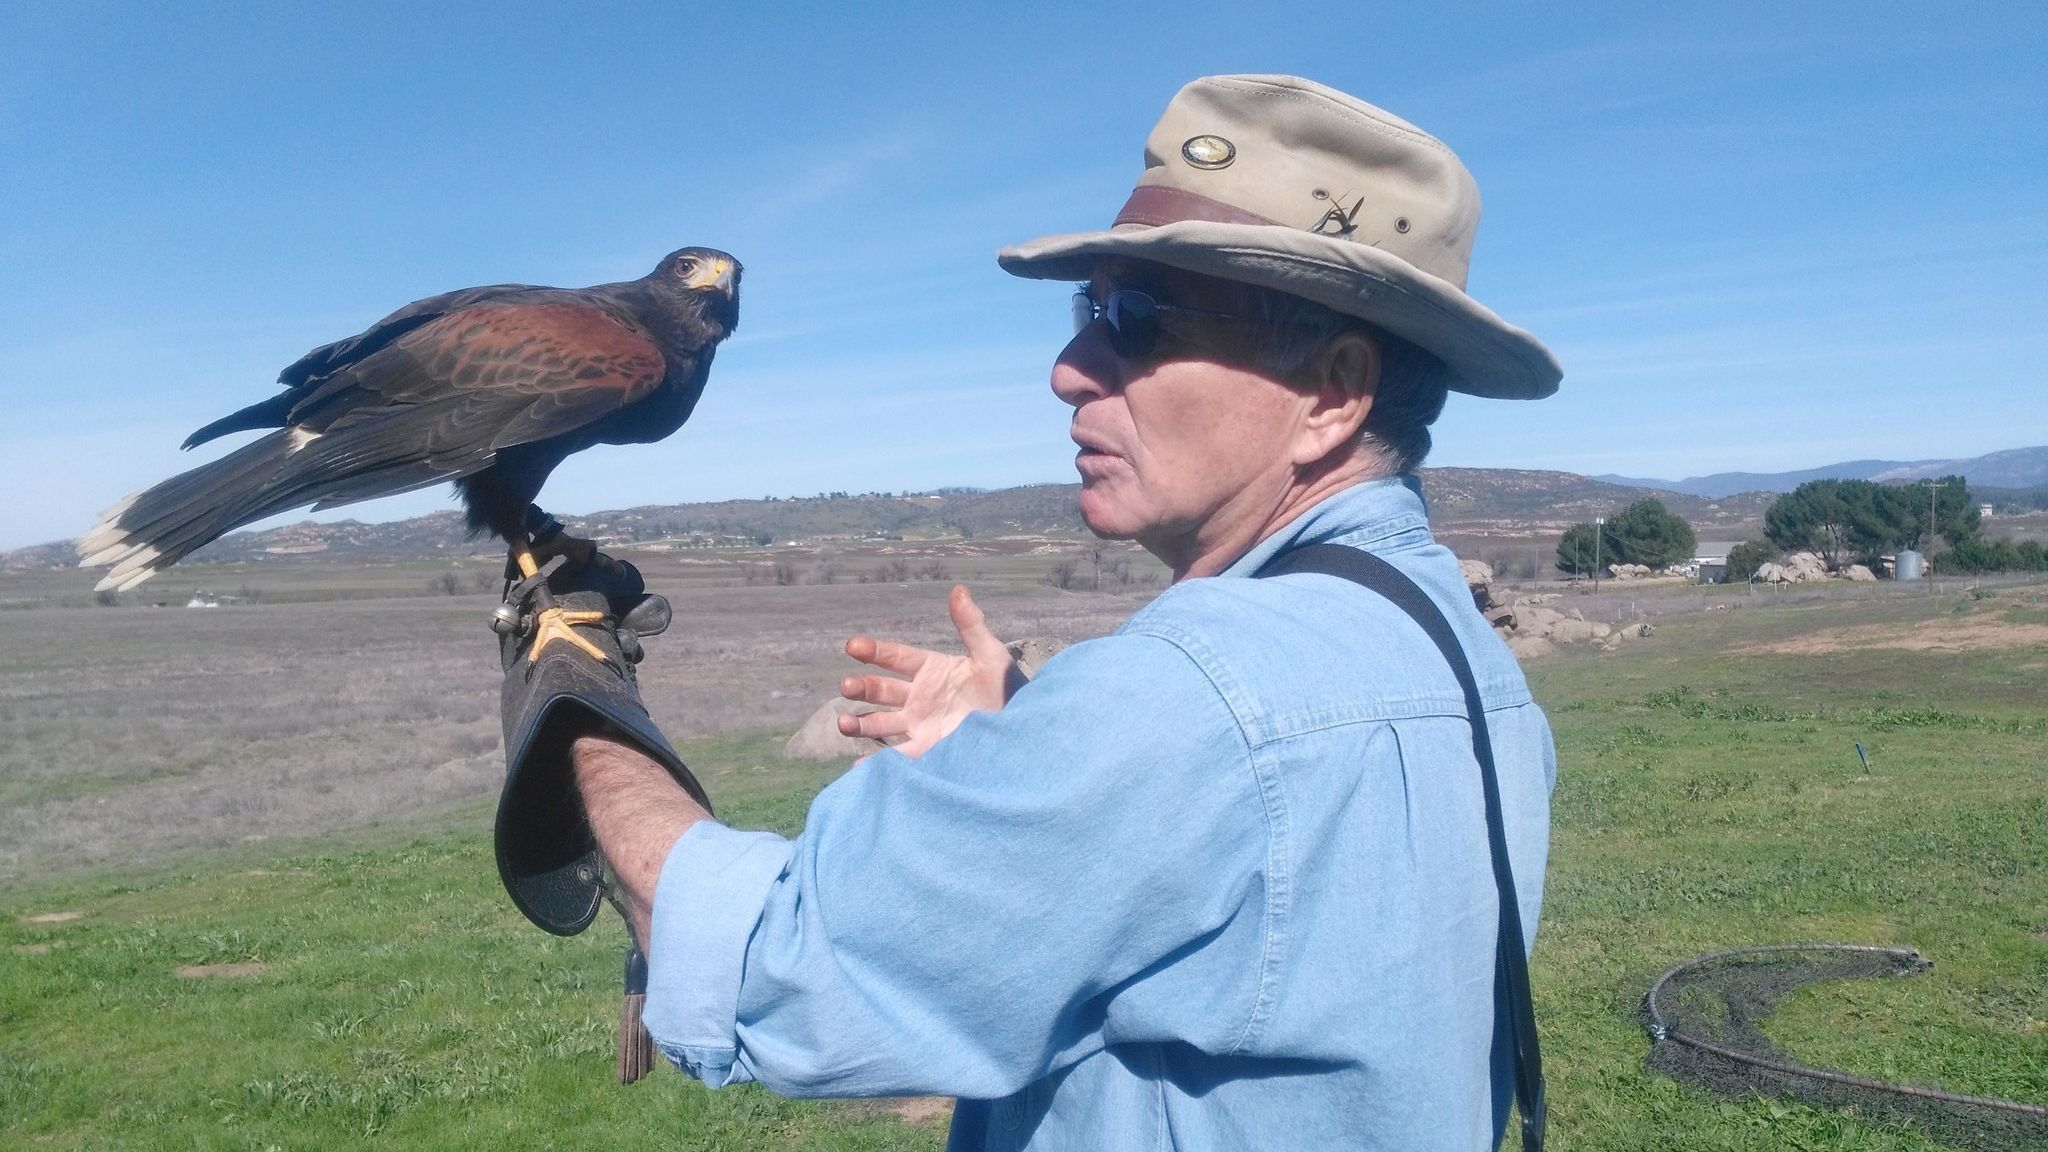 Bob Gordon holds Huxley, a Harris's hawk, at Hawk Watch. The Harris's hawk is considered one of the most social raptors, often hunting cooperatively and rearing young as a team.